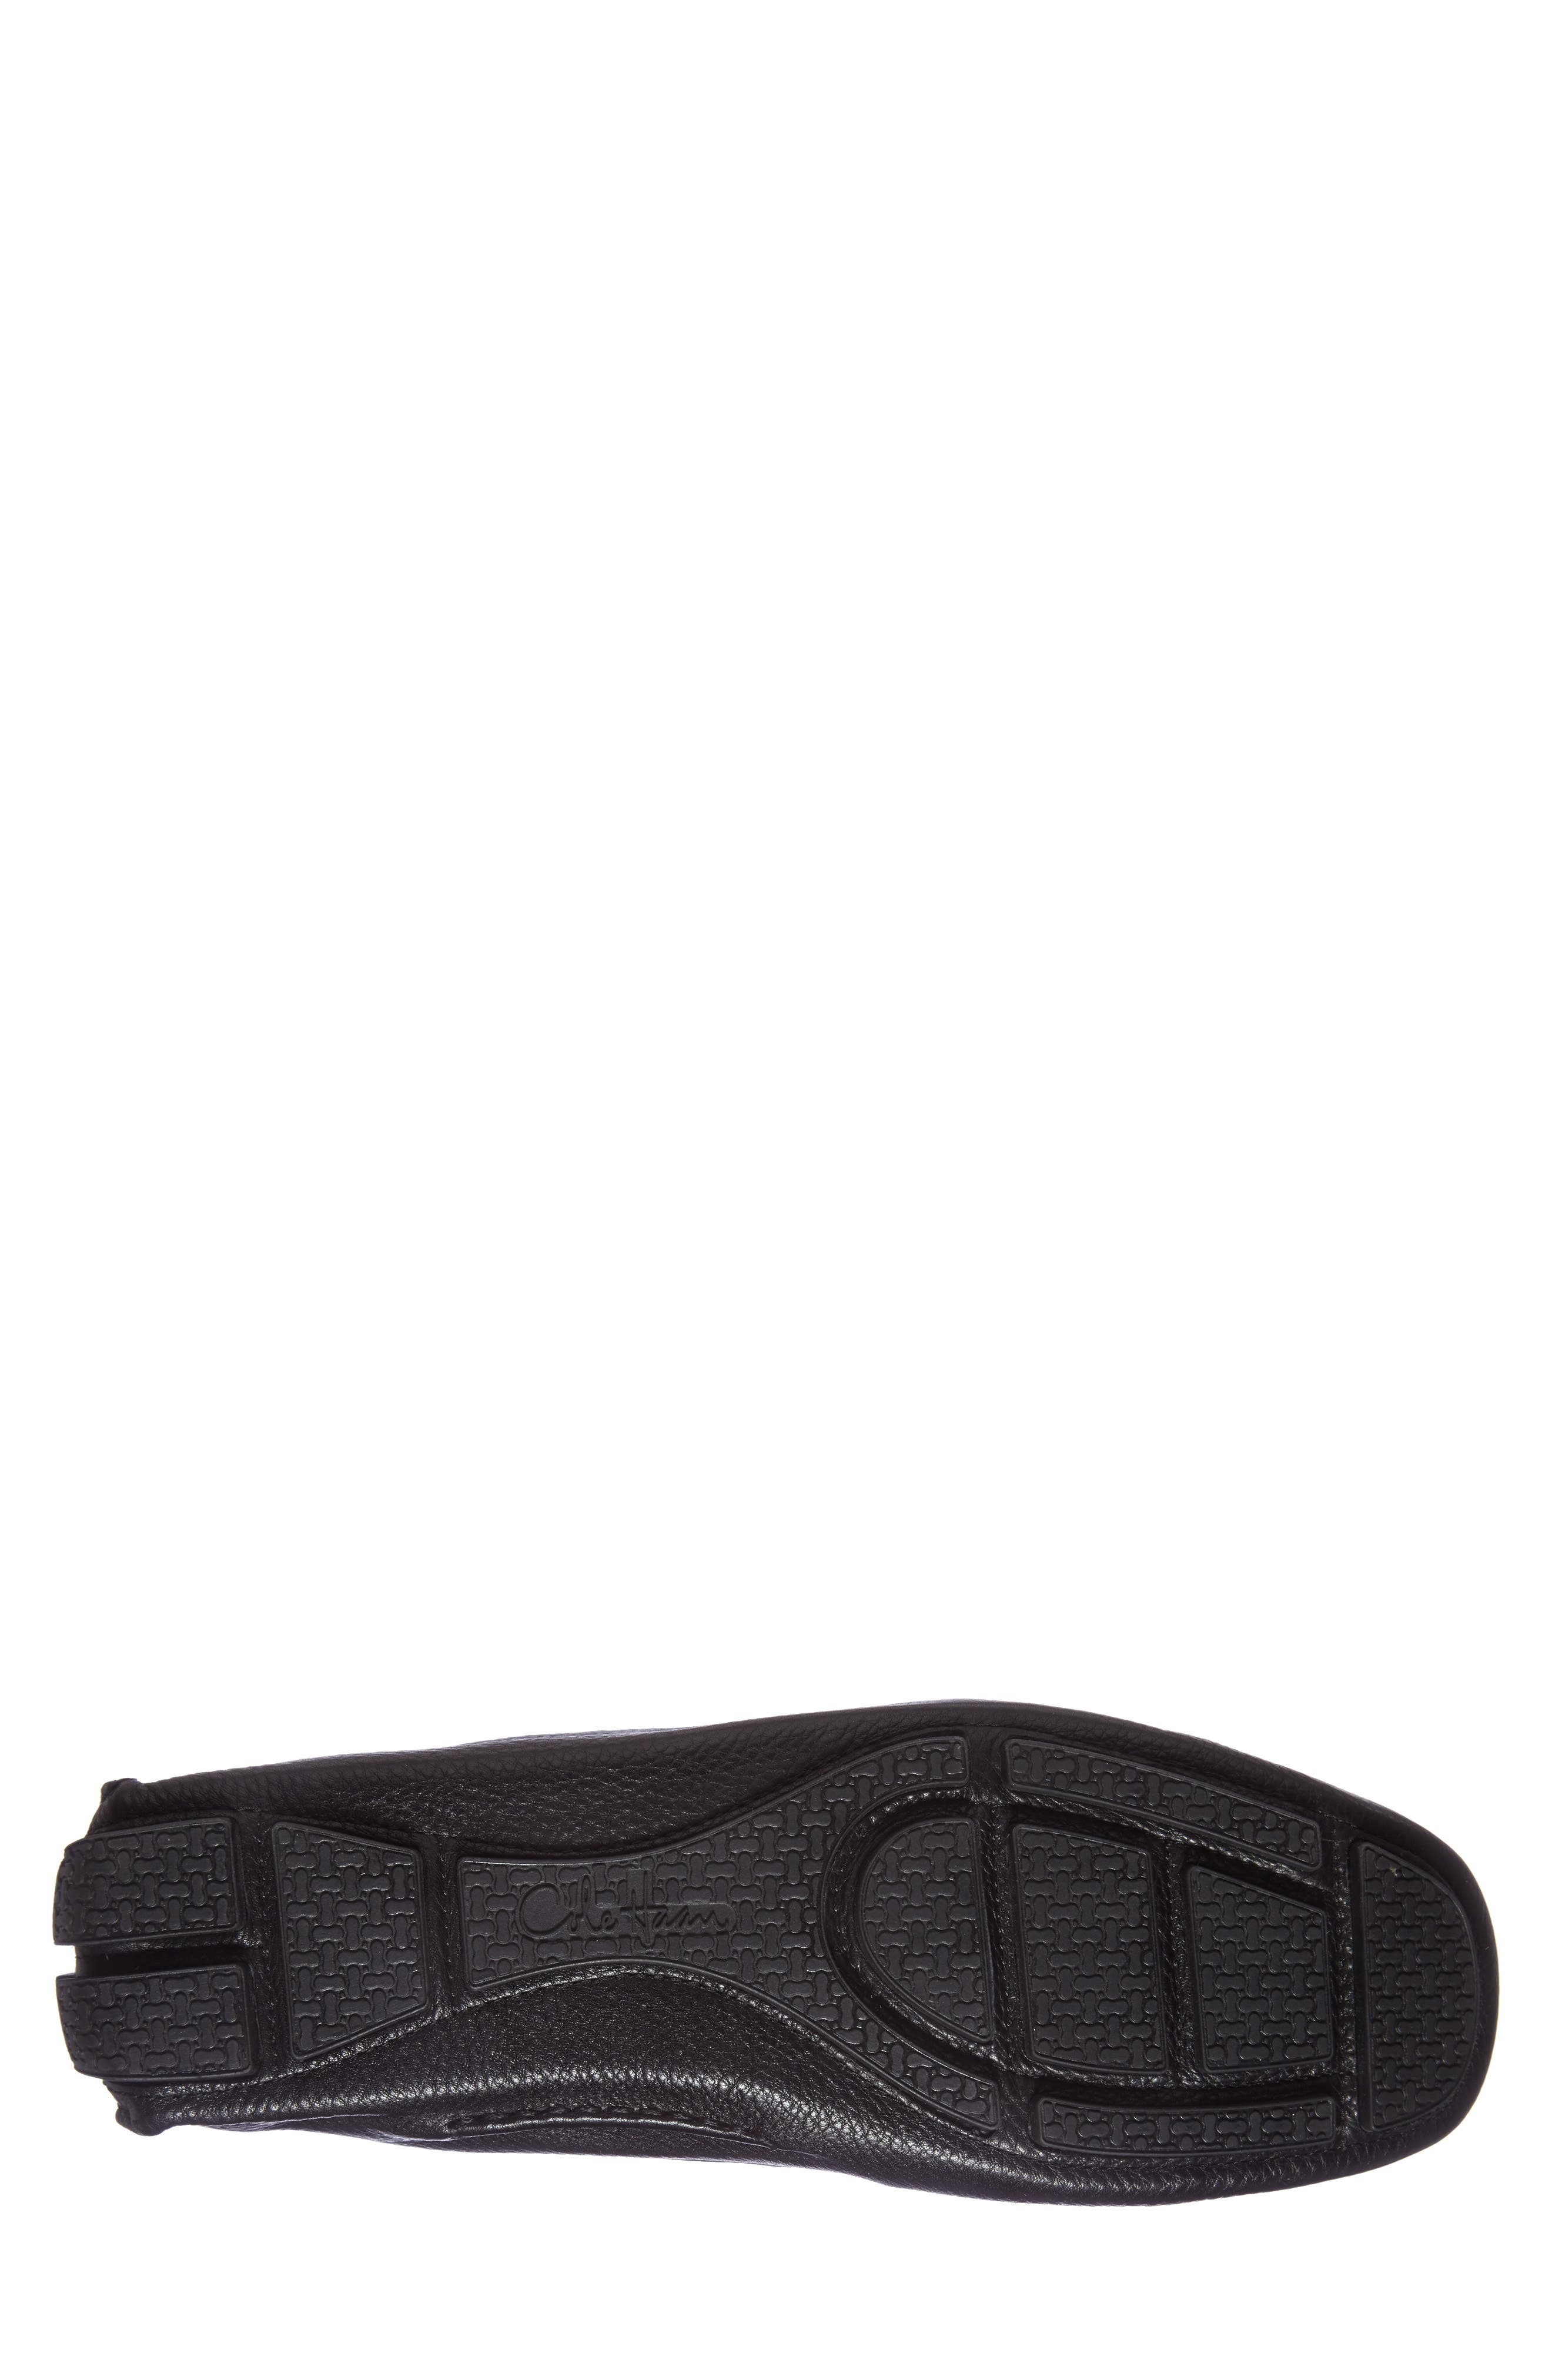 'Howland' Penny Loafer,                             Alternate thumbnail 9, color,                             BLACK TUMBLED